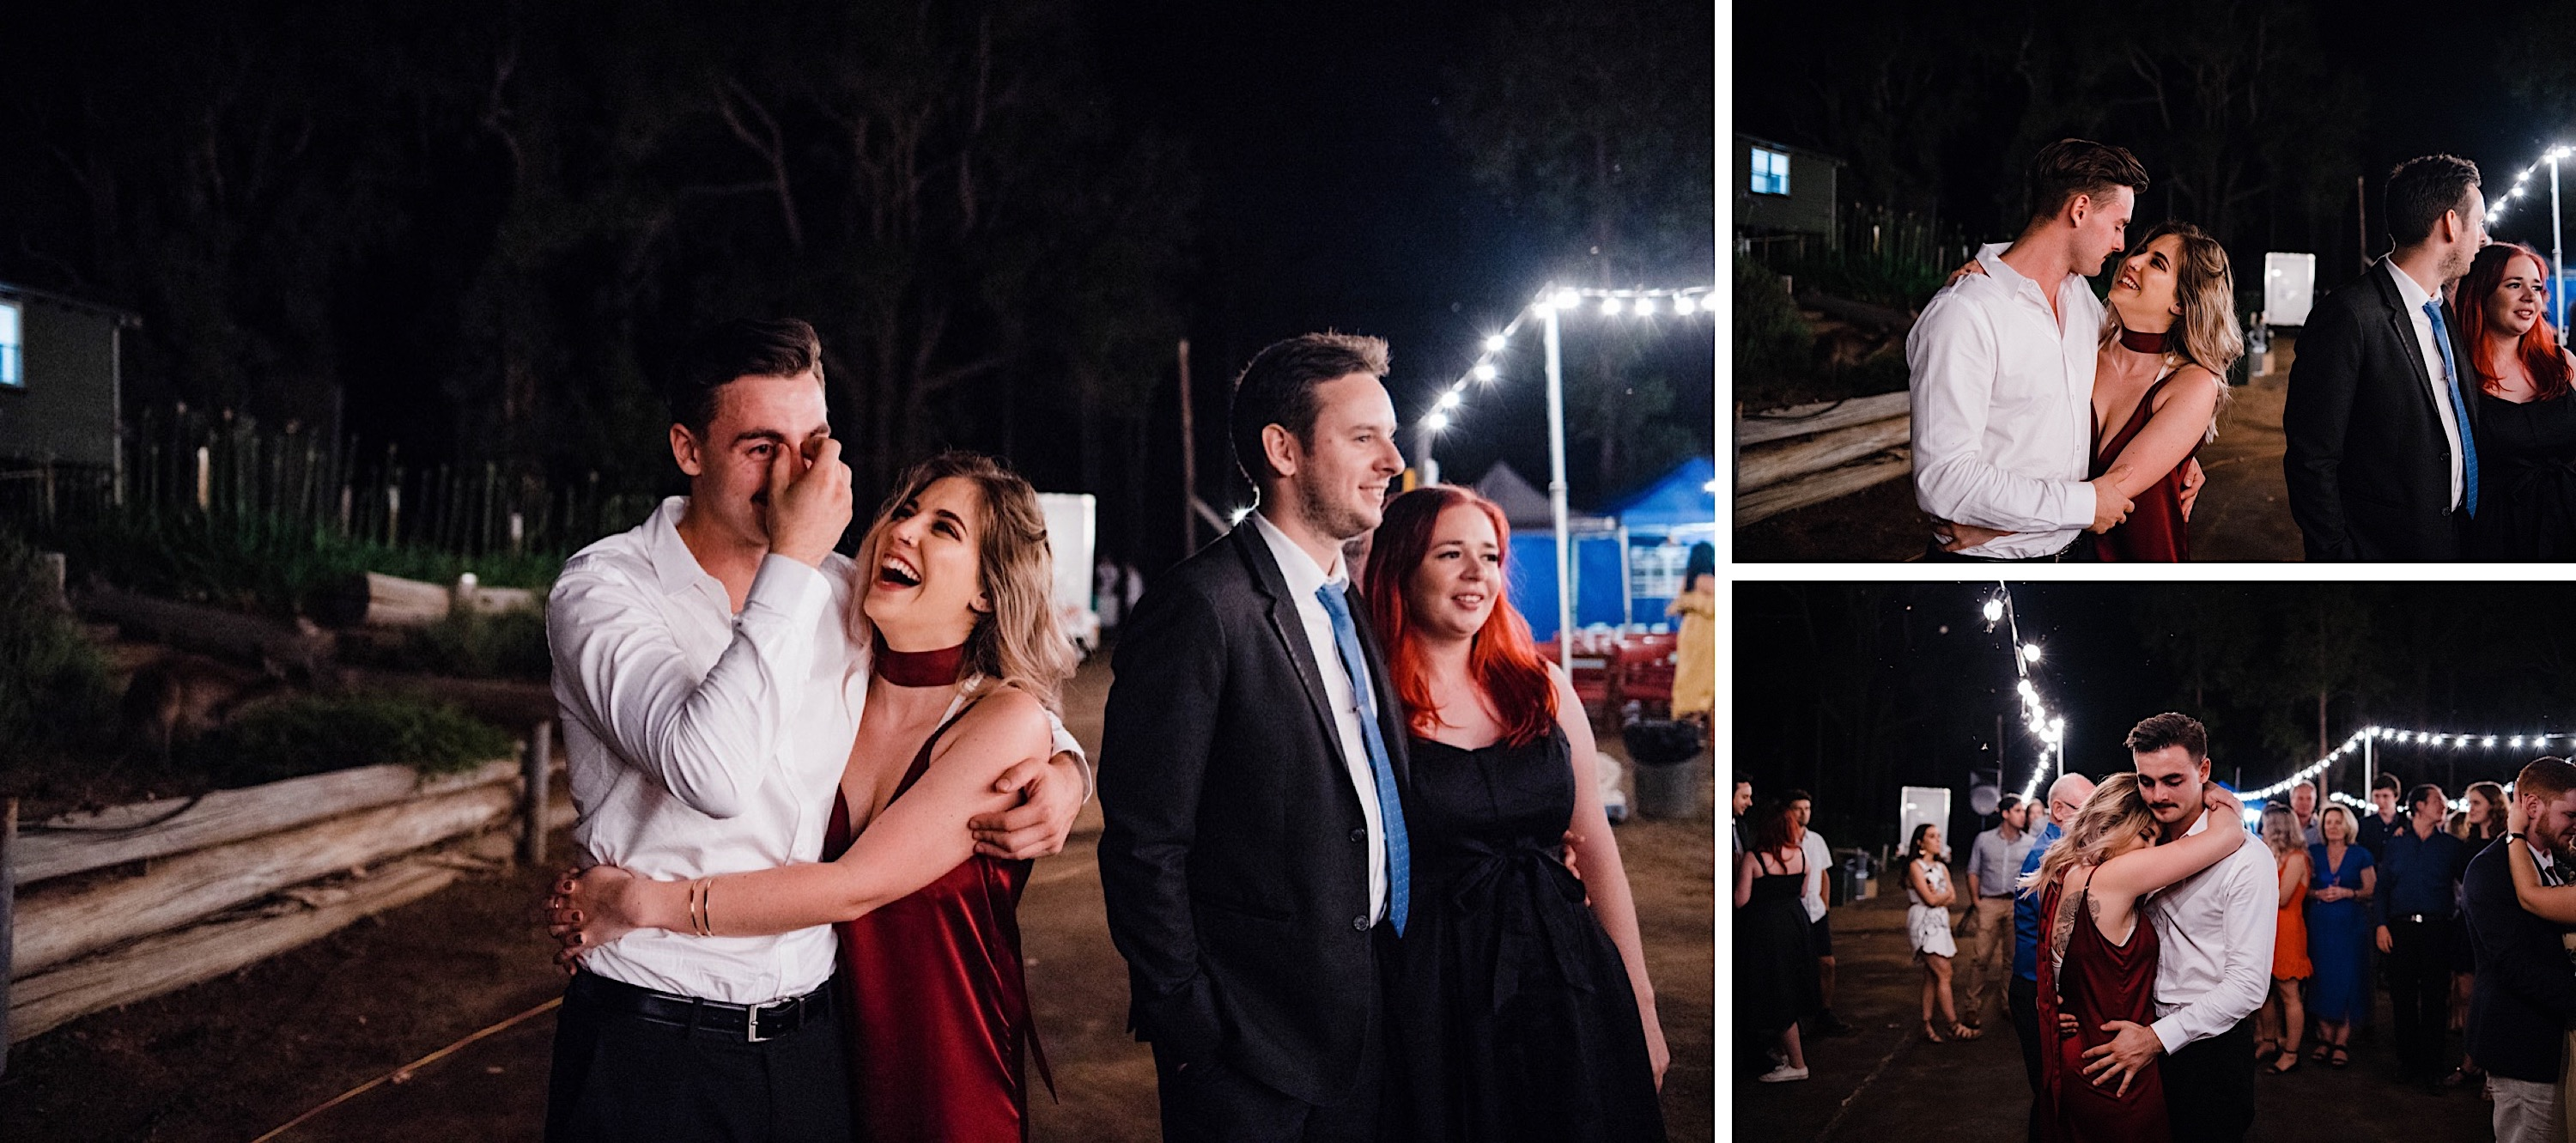 Photos of wedding guests laughing and dancing during a Donnelly River Wedding Reception.